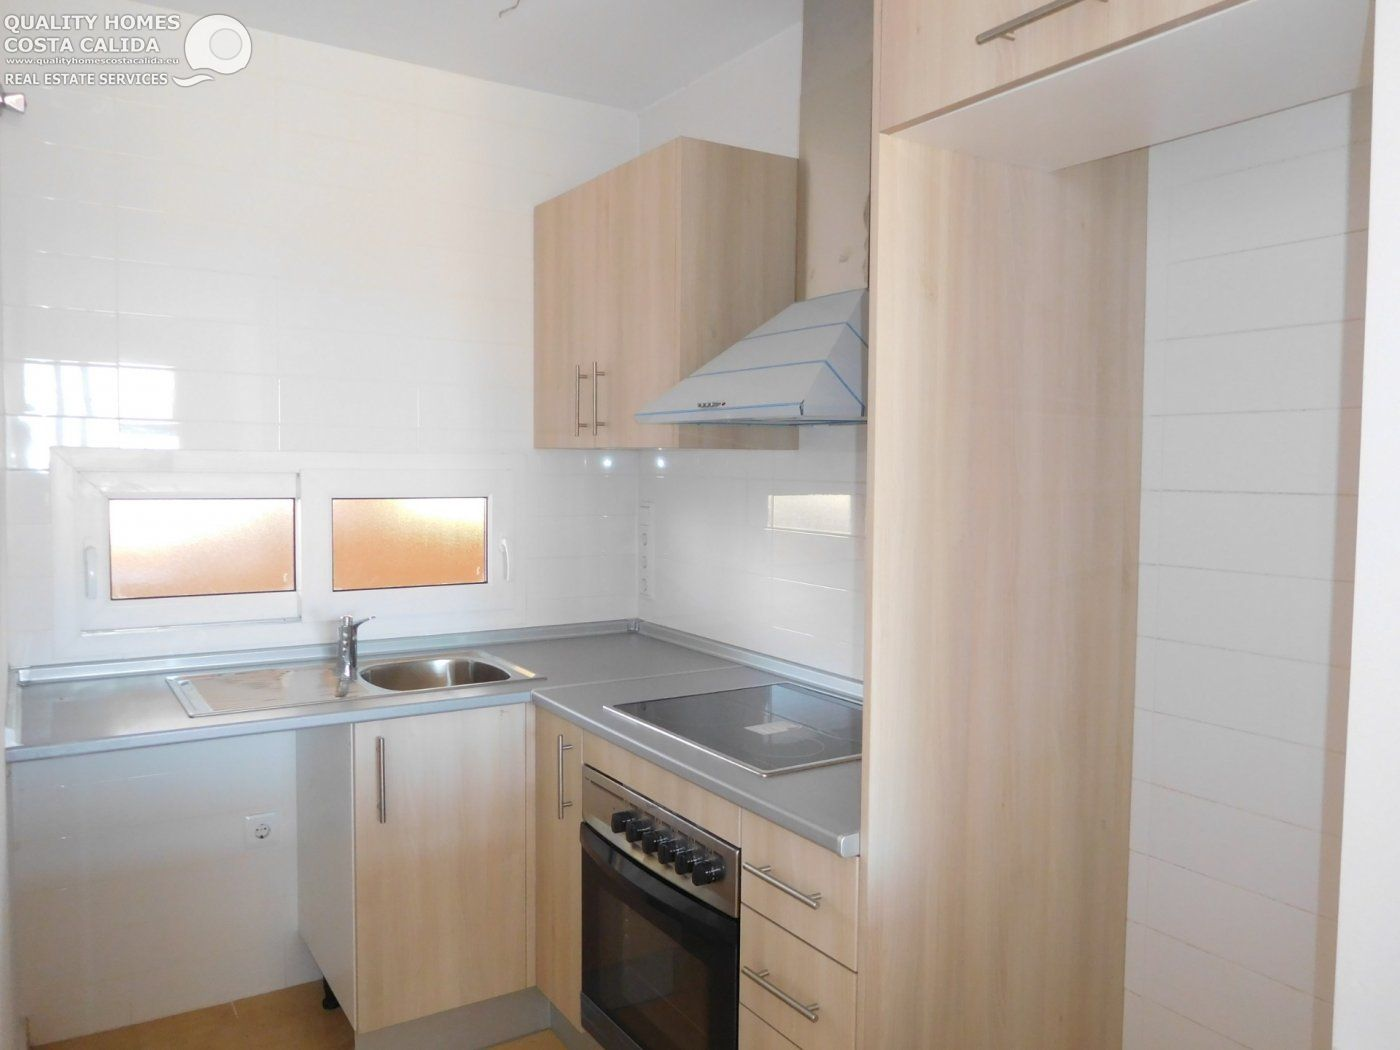 Gallery Image 11 of NEW BANK RELEASE - New 2 Bedroom Apartments at La Isla del Condado For Sale from €53,100